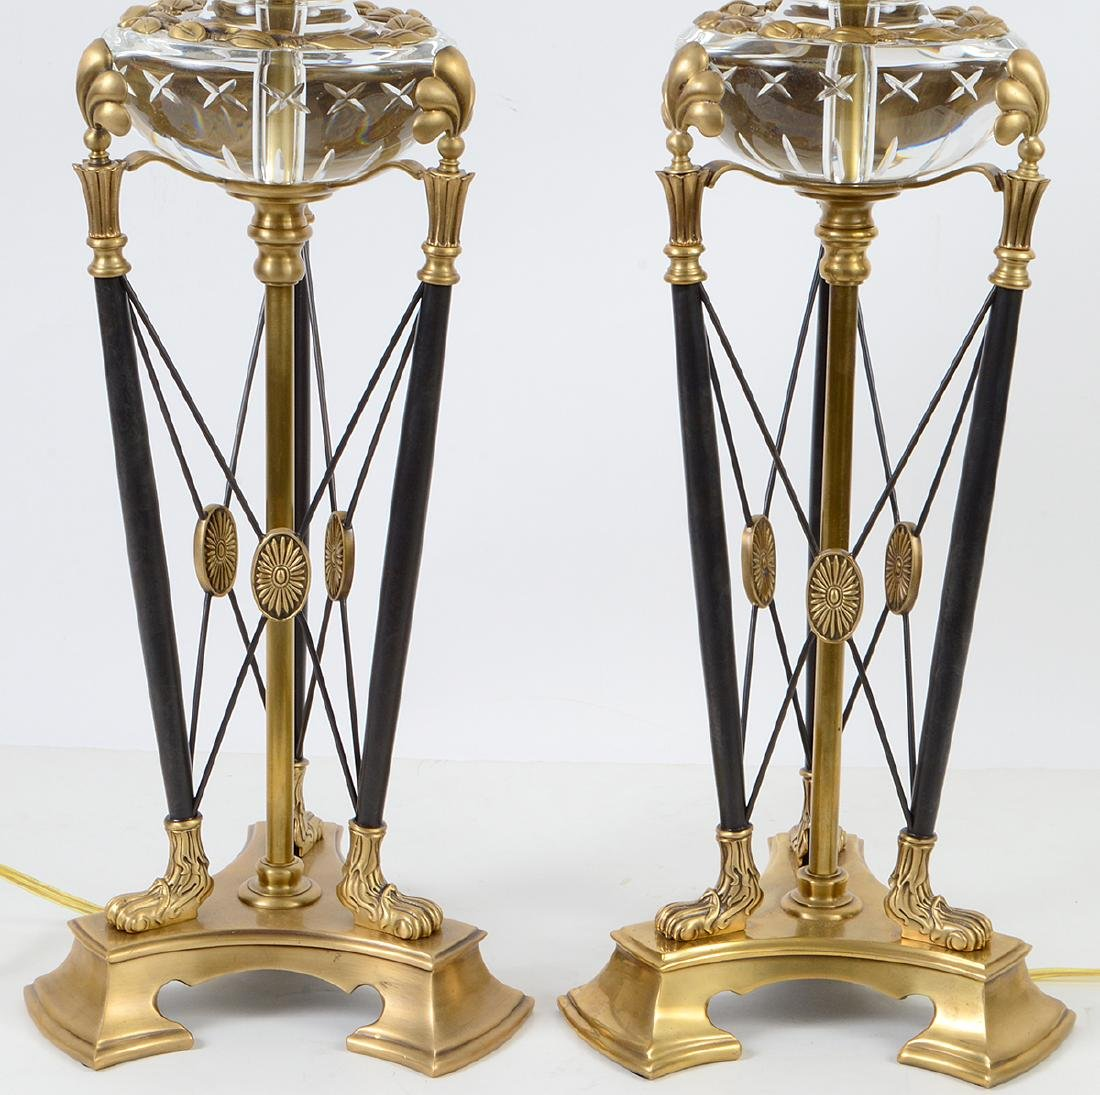 PAIR OF CROFTON VARIOUS METAL AND GLASS TRIPOD LAMPS - 5